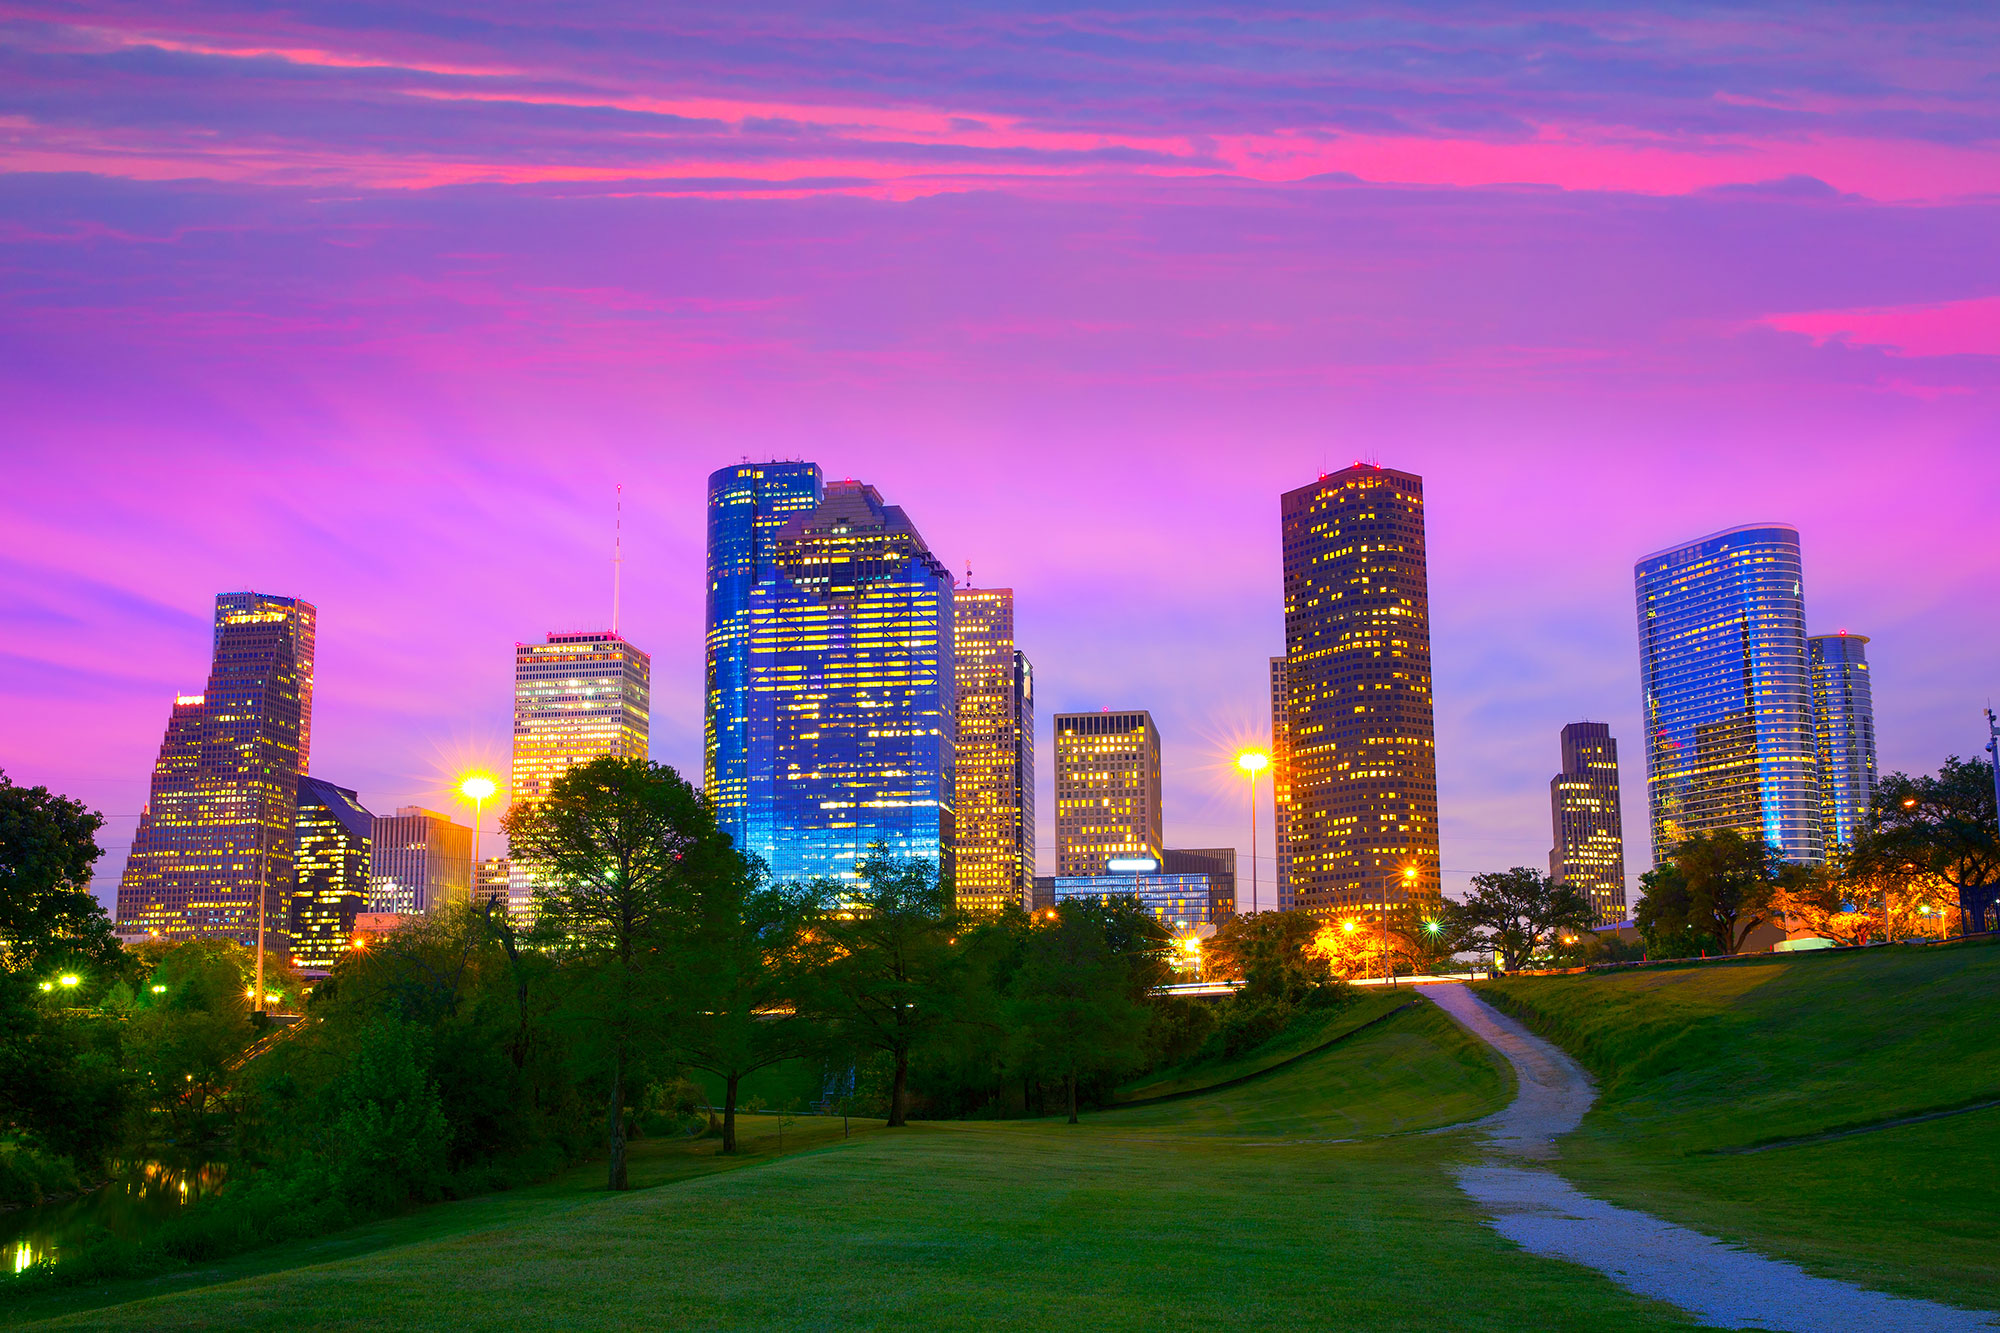 18. Houston, Texas